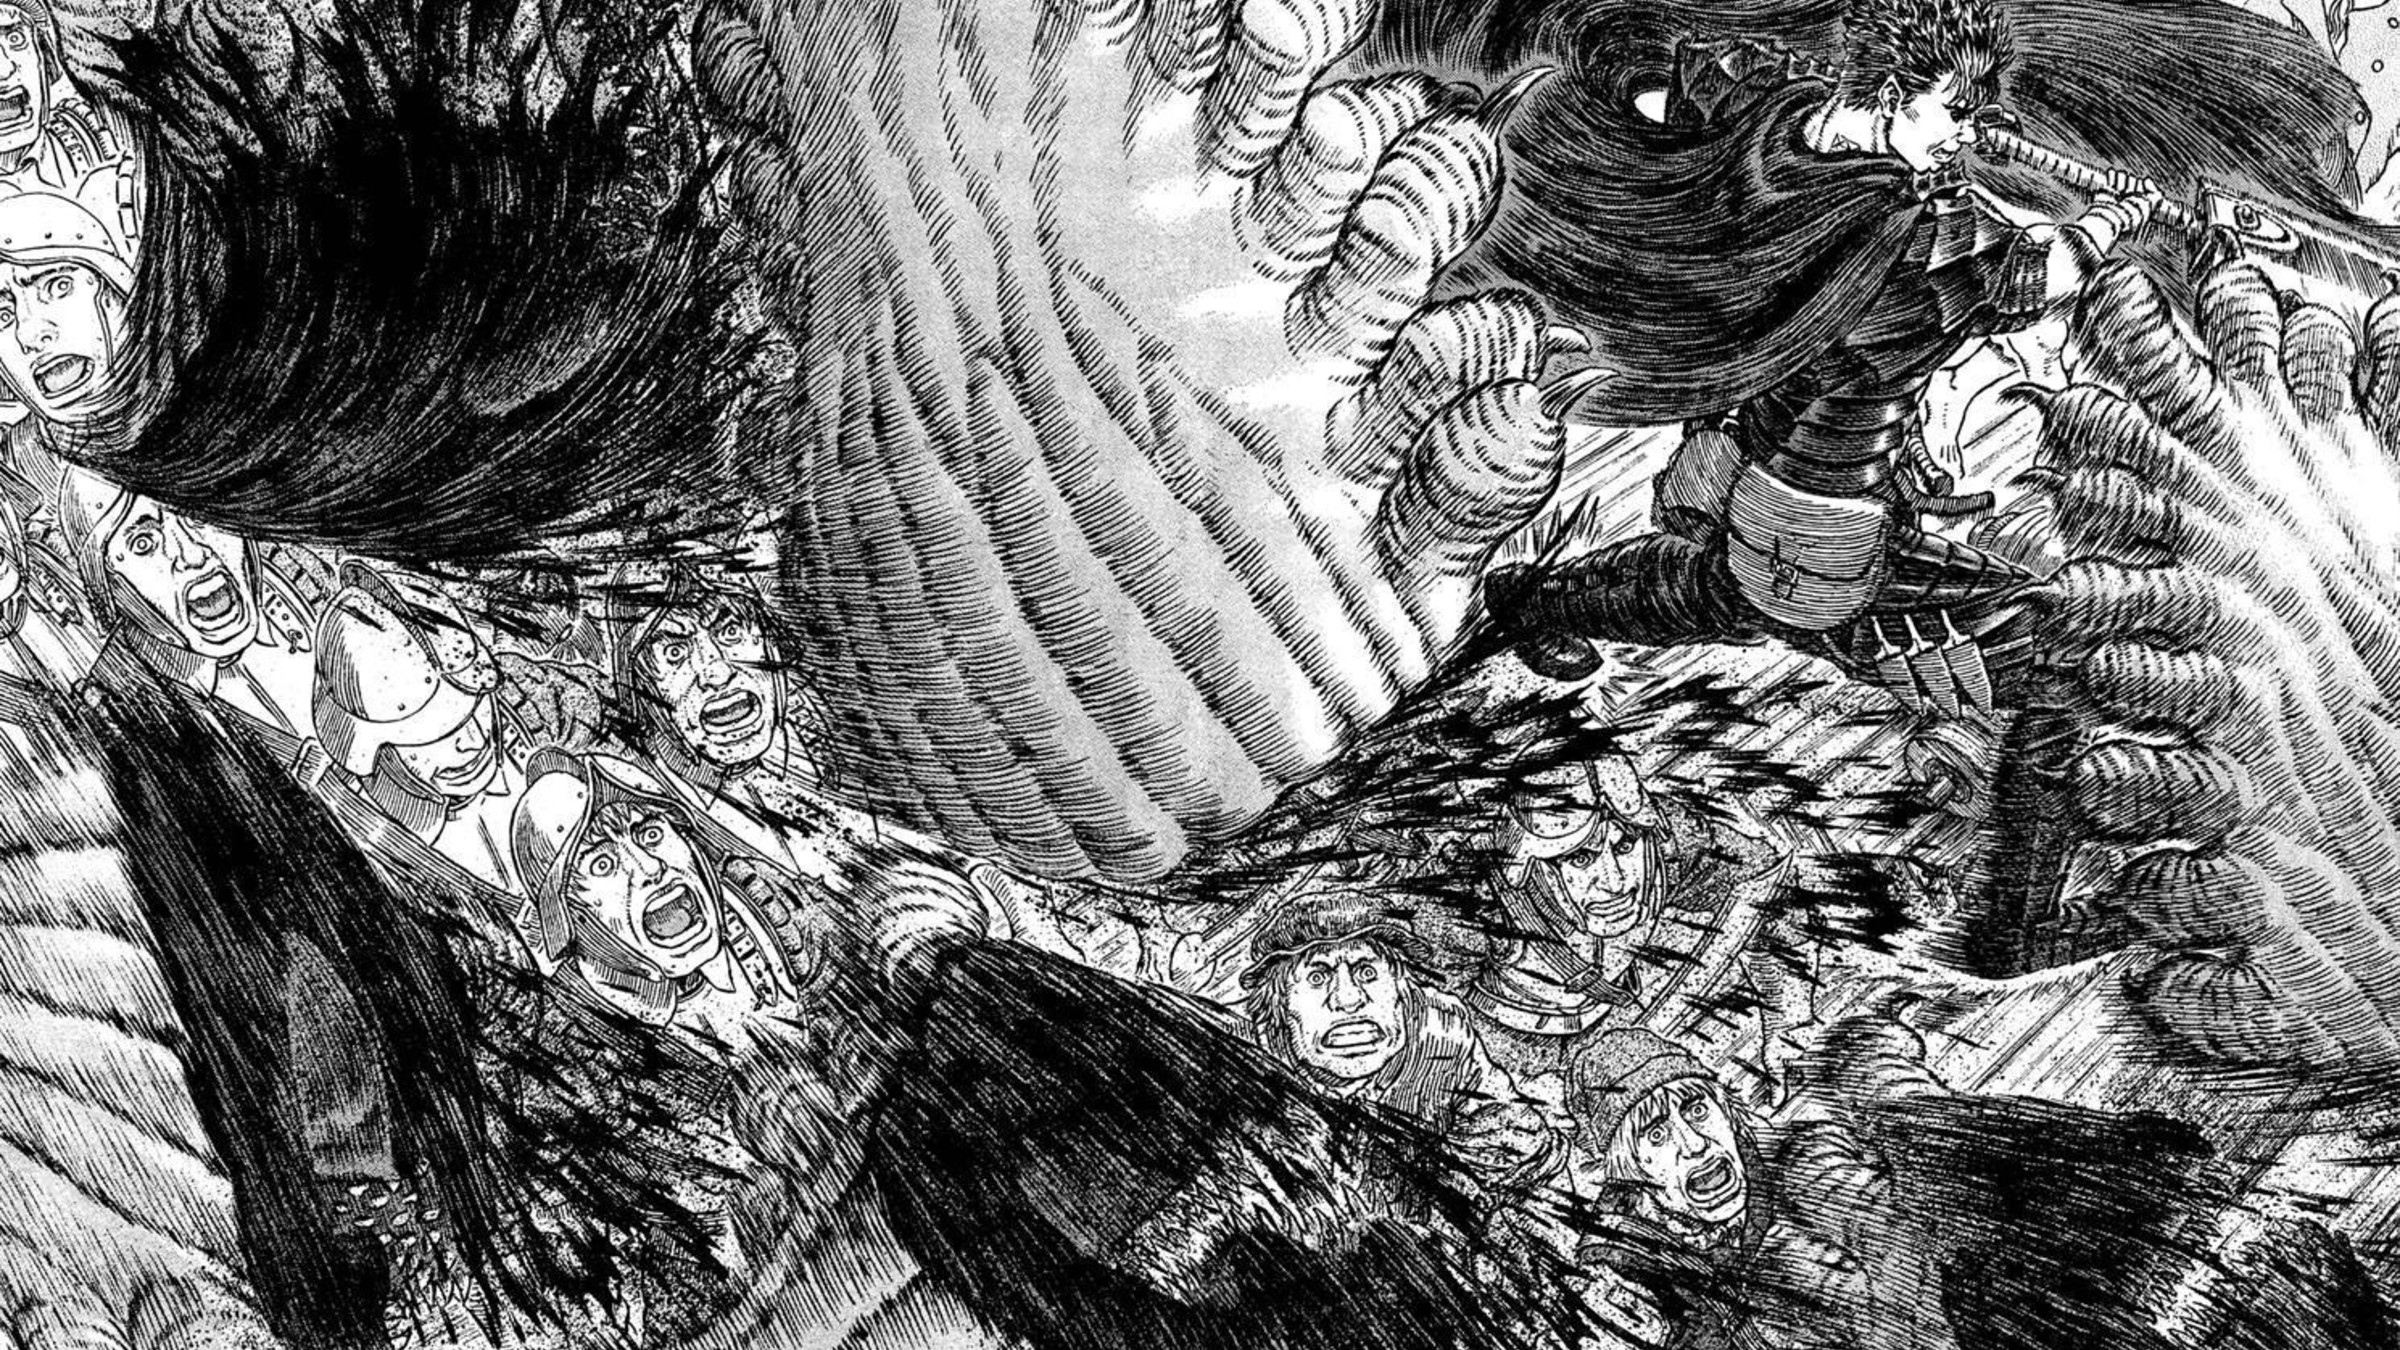 Berserk Manga Hd Wallpaper